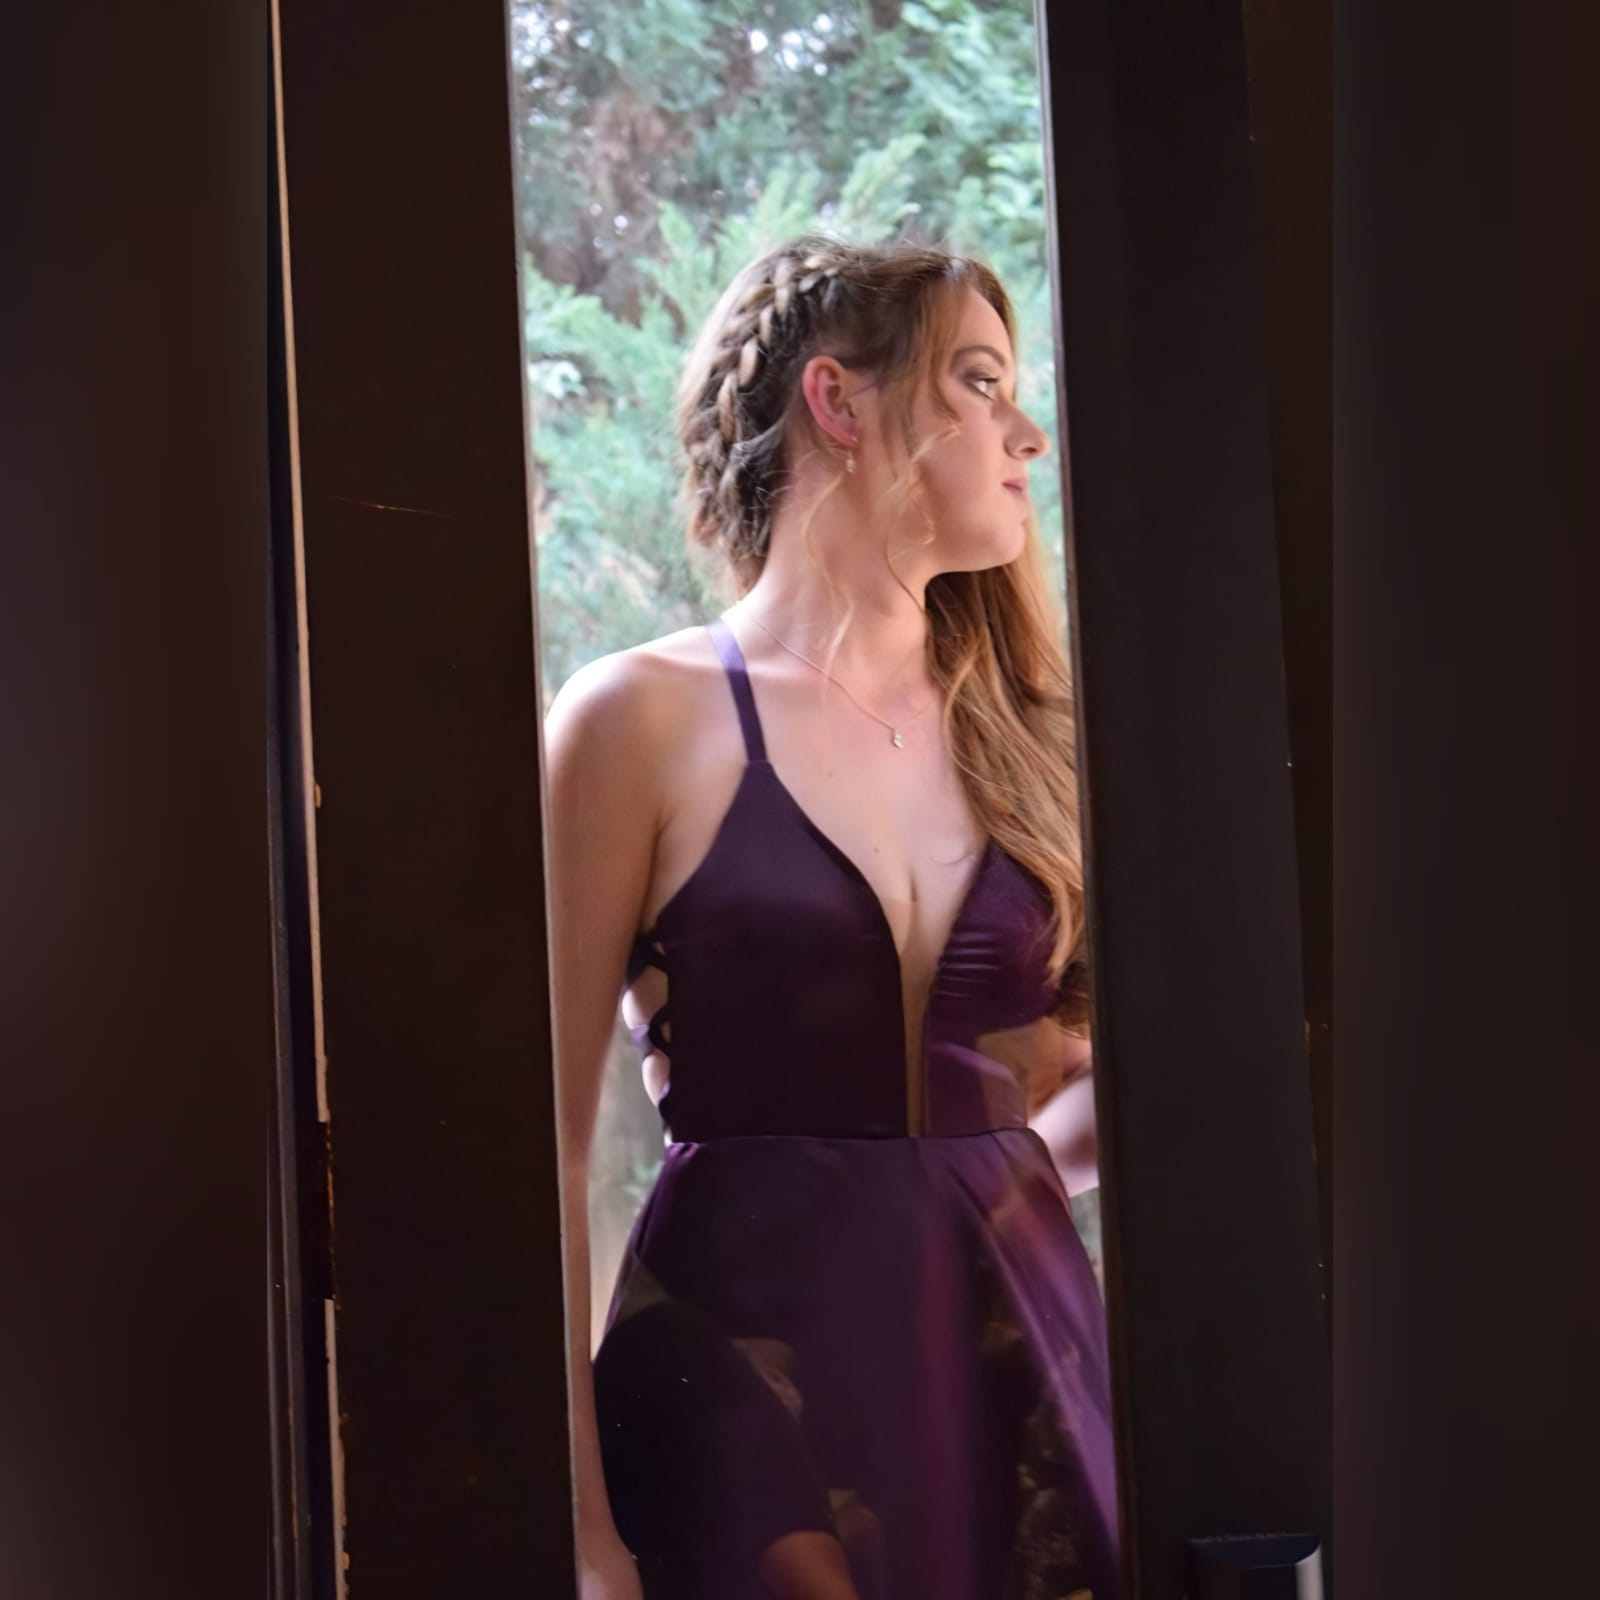 Plum long flowy prom dress with a plunging neckline 3 plum long flowy prom dress with a plunging neckline and a lace up open back with a slit and train.